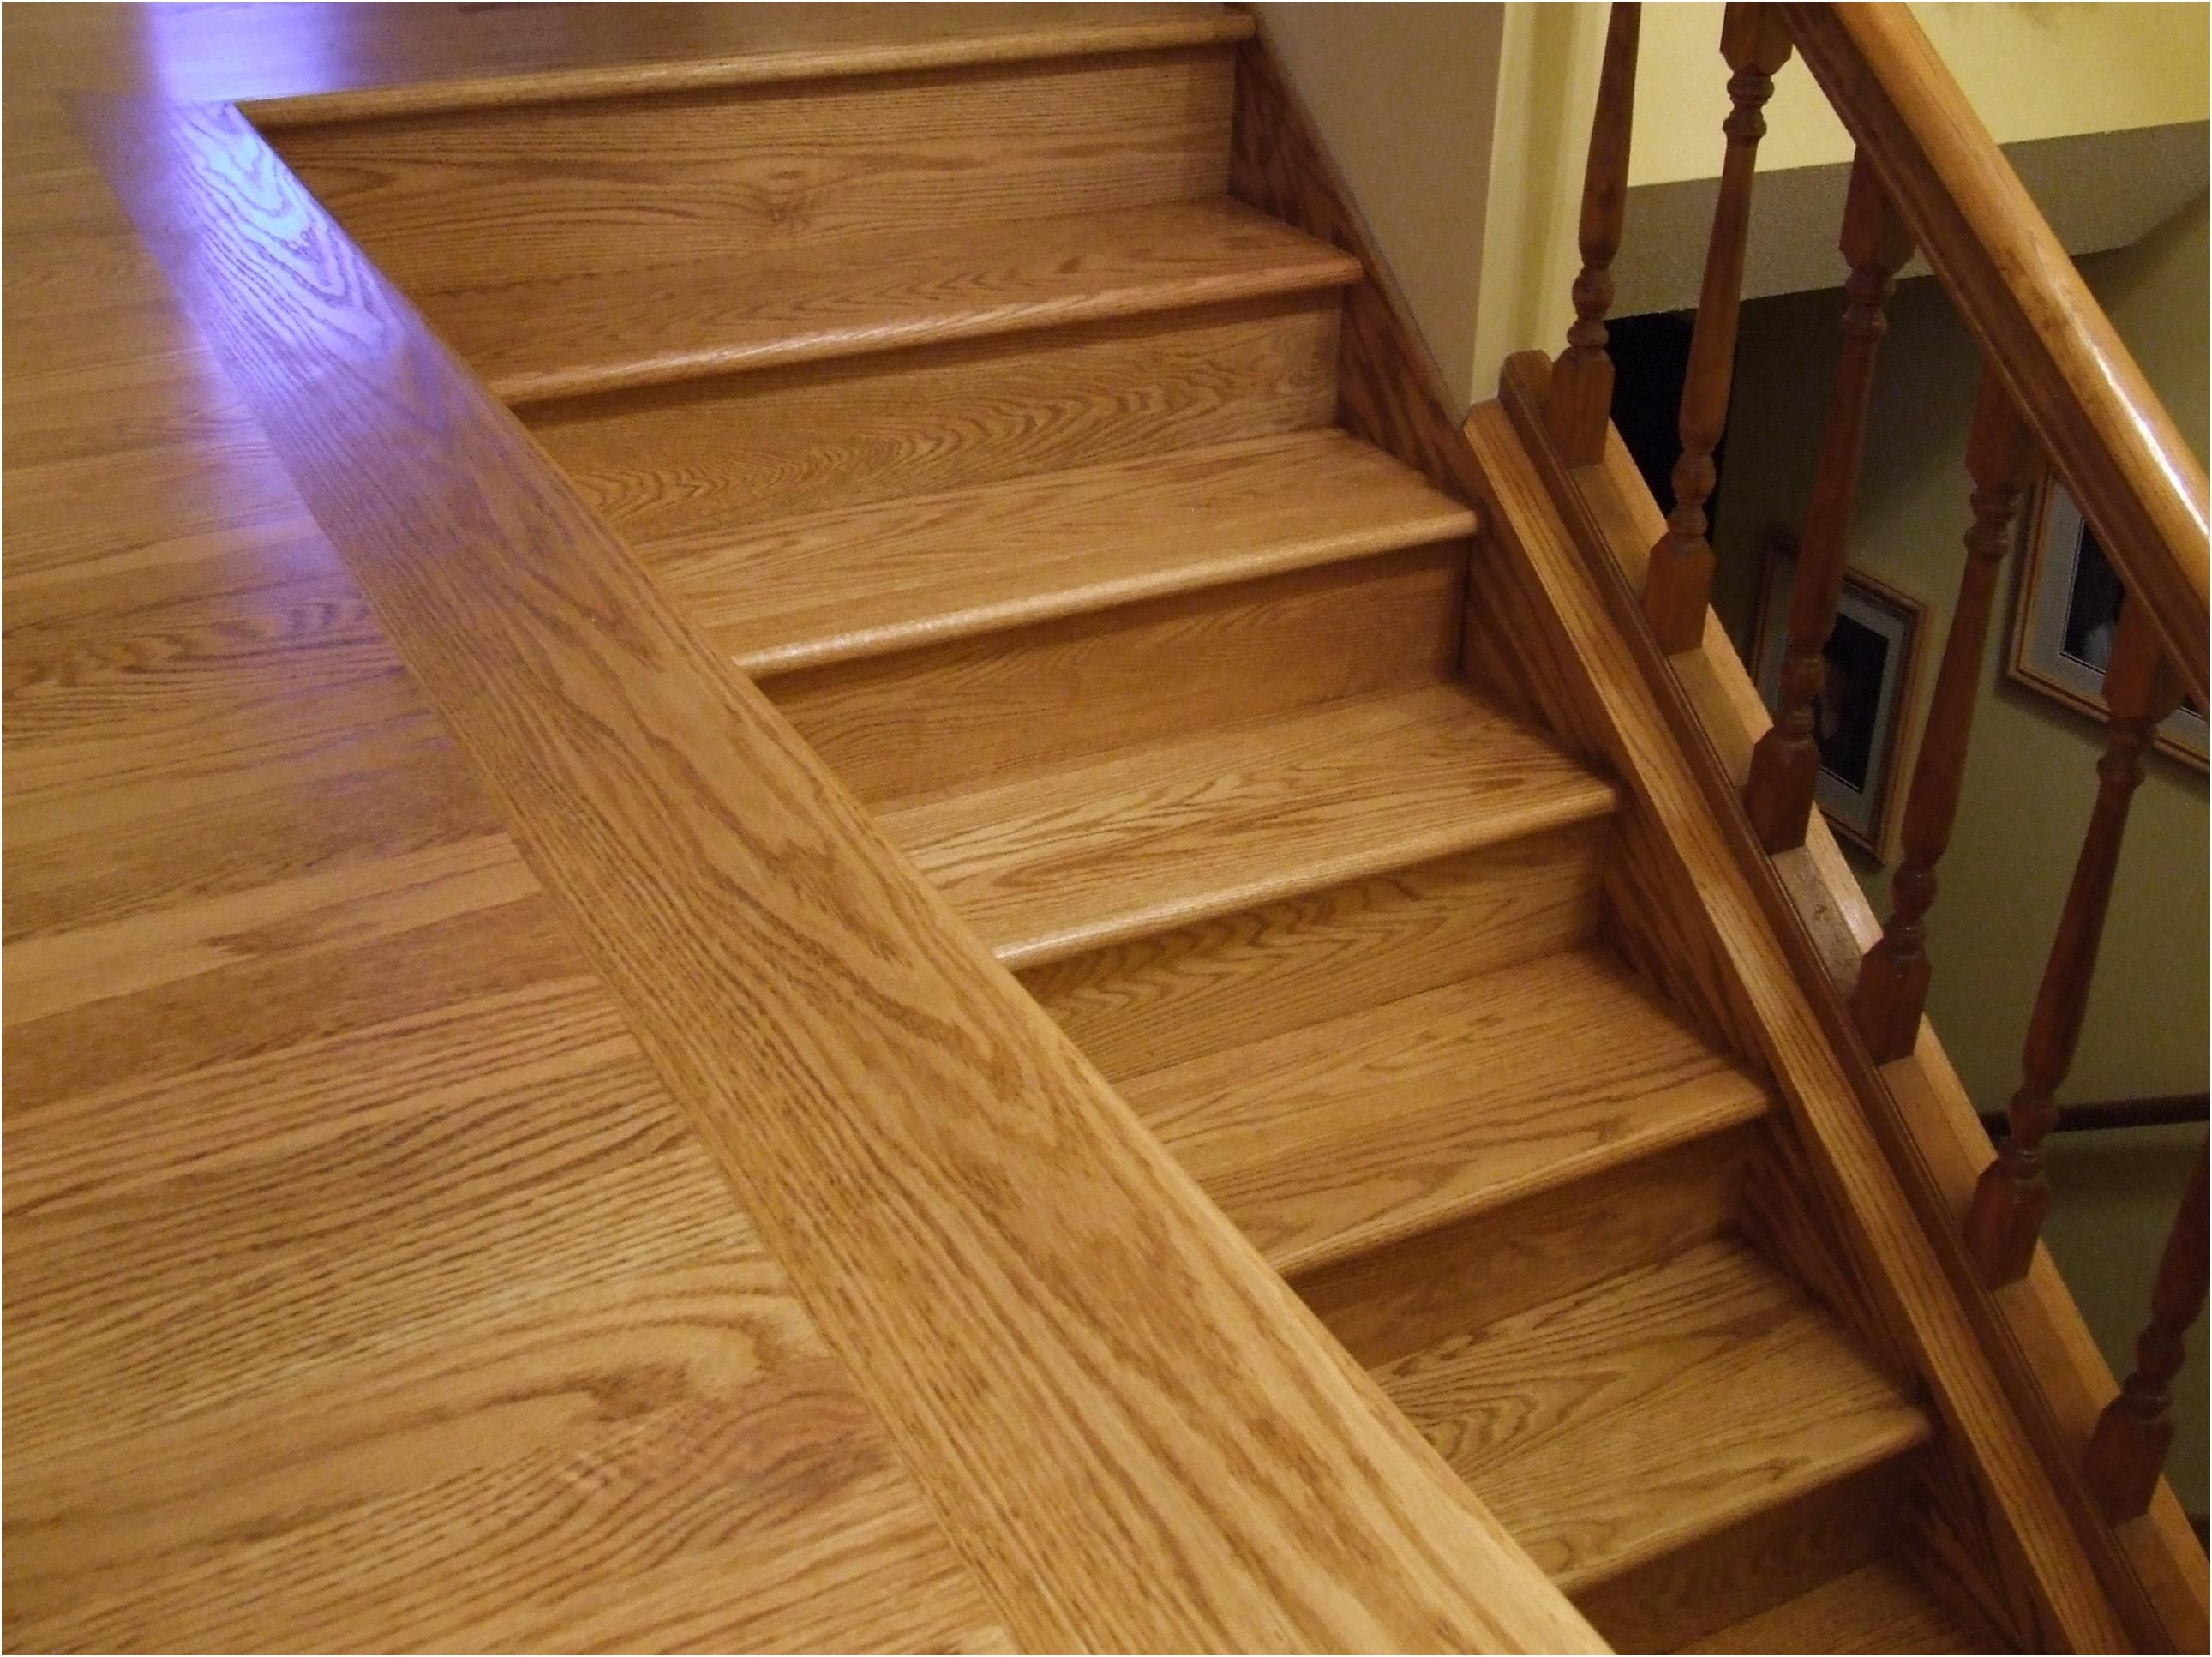 discount unfinished hardwood flooring of homemade hardwood floor cleaner unfinished hardwood floor cleaner with regard to solid hardwood flooring homemade hardwood floor cleaner fake wood laminate maple flooring cheap pergo pricing rustic